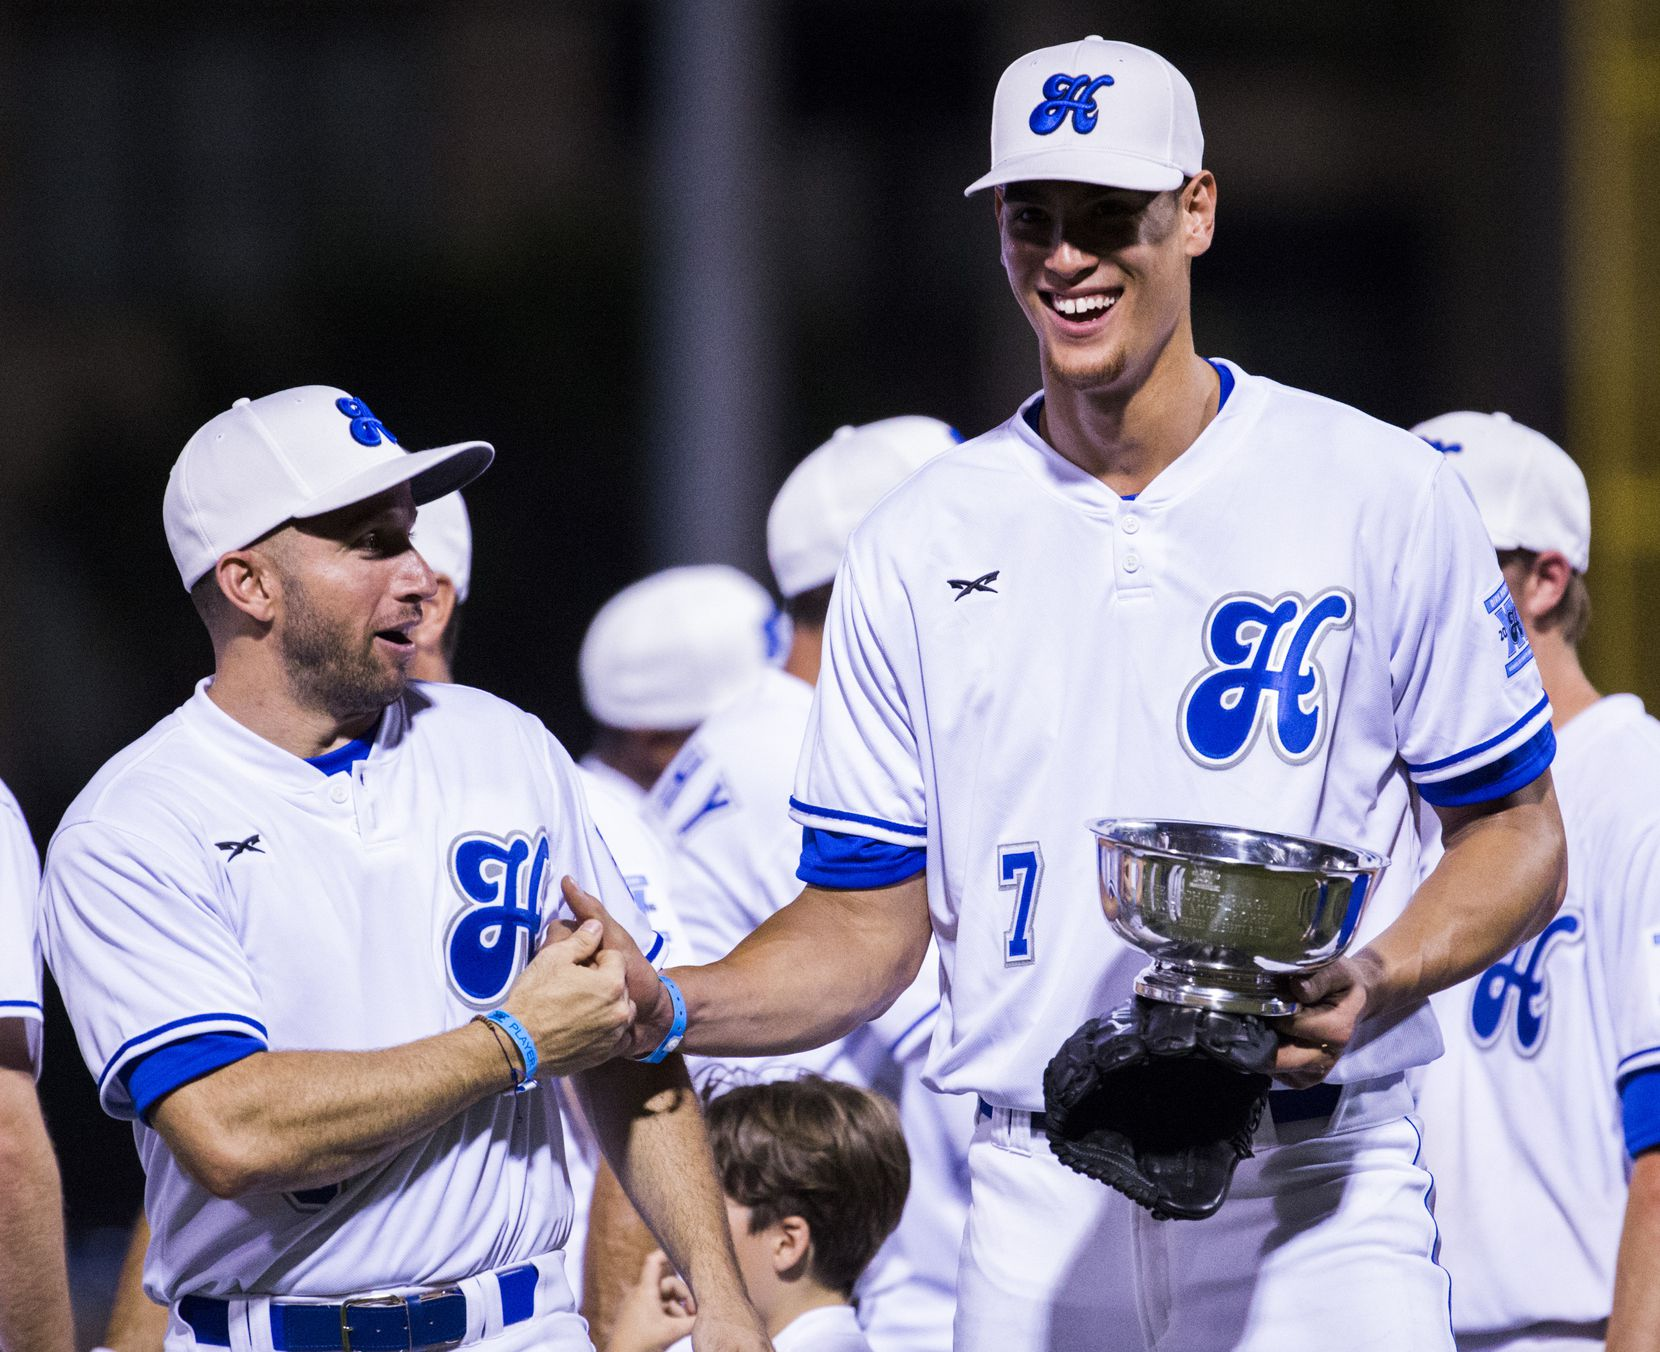 Dallas Mavericks forward Dwight Powell (7) celebrates being named the MVP with White Sox teammate Dallas Mavericks guard J.J. Barea (5) during Dirk Nowitzki's 2016 Heroes Celebrity Baseball Game on Friday, June 10, 2016 at Dr Pepper Ballpark in Frisco, Texas. The White Sox won 16-12 over the Blue Sox. (Ashley Landis/The Dallas Morning News)